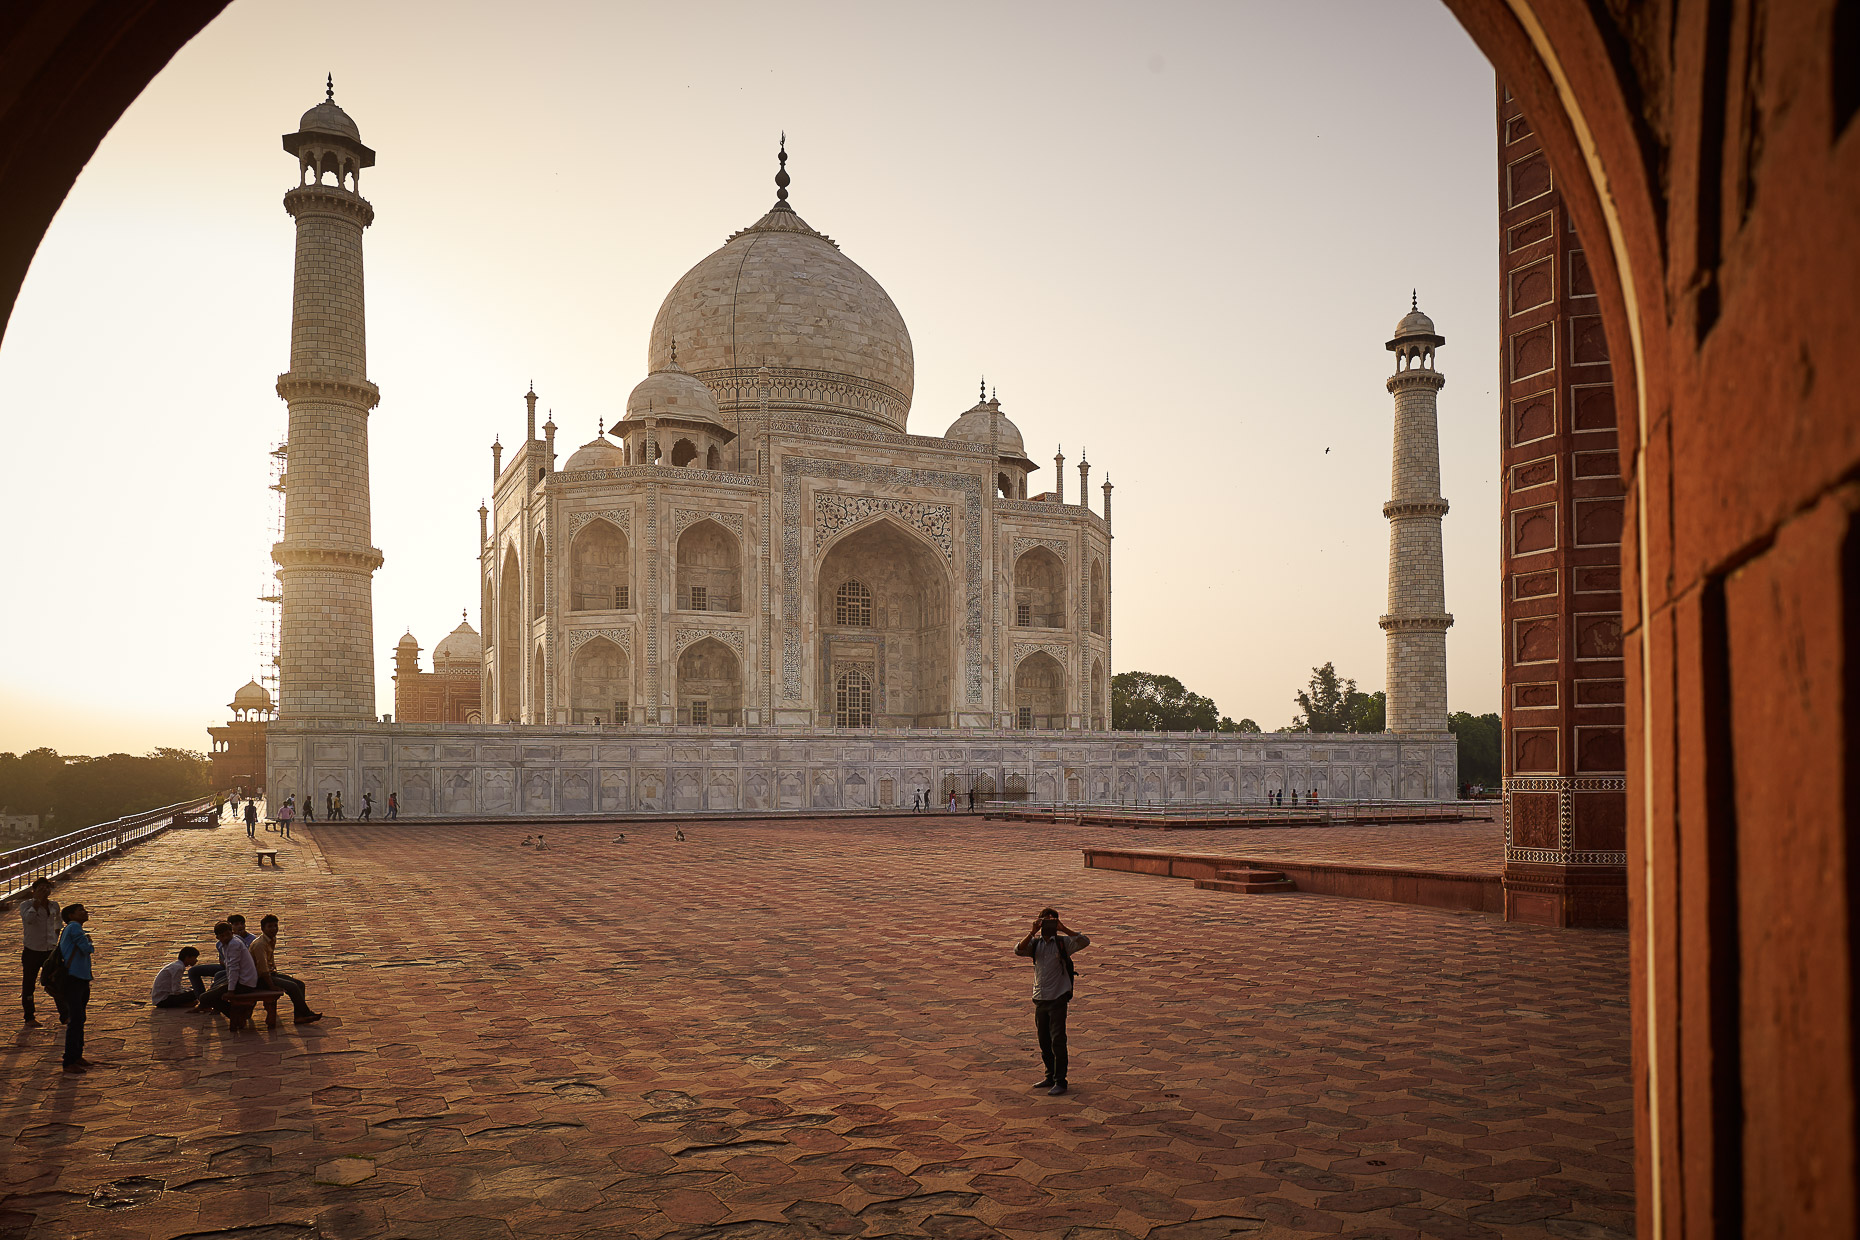 Personal_India_Agra_L1050946-27